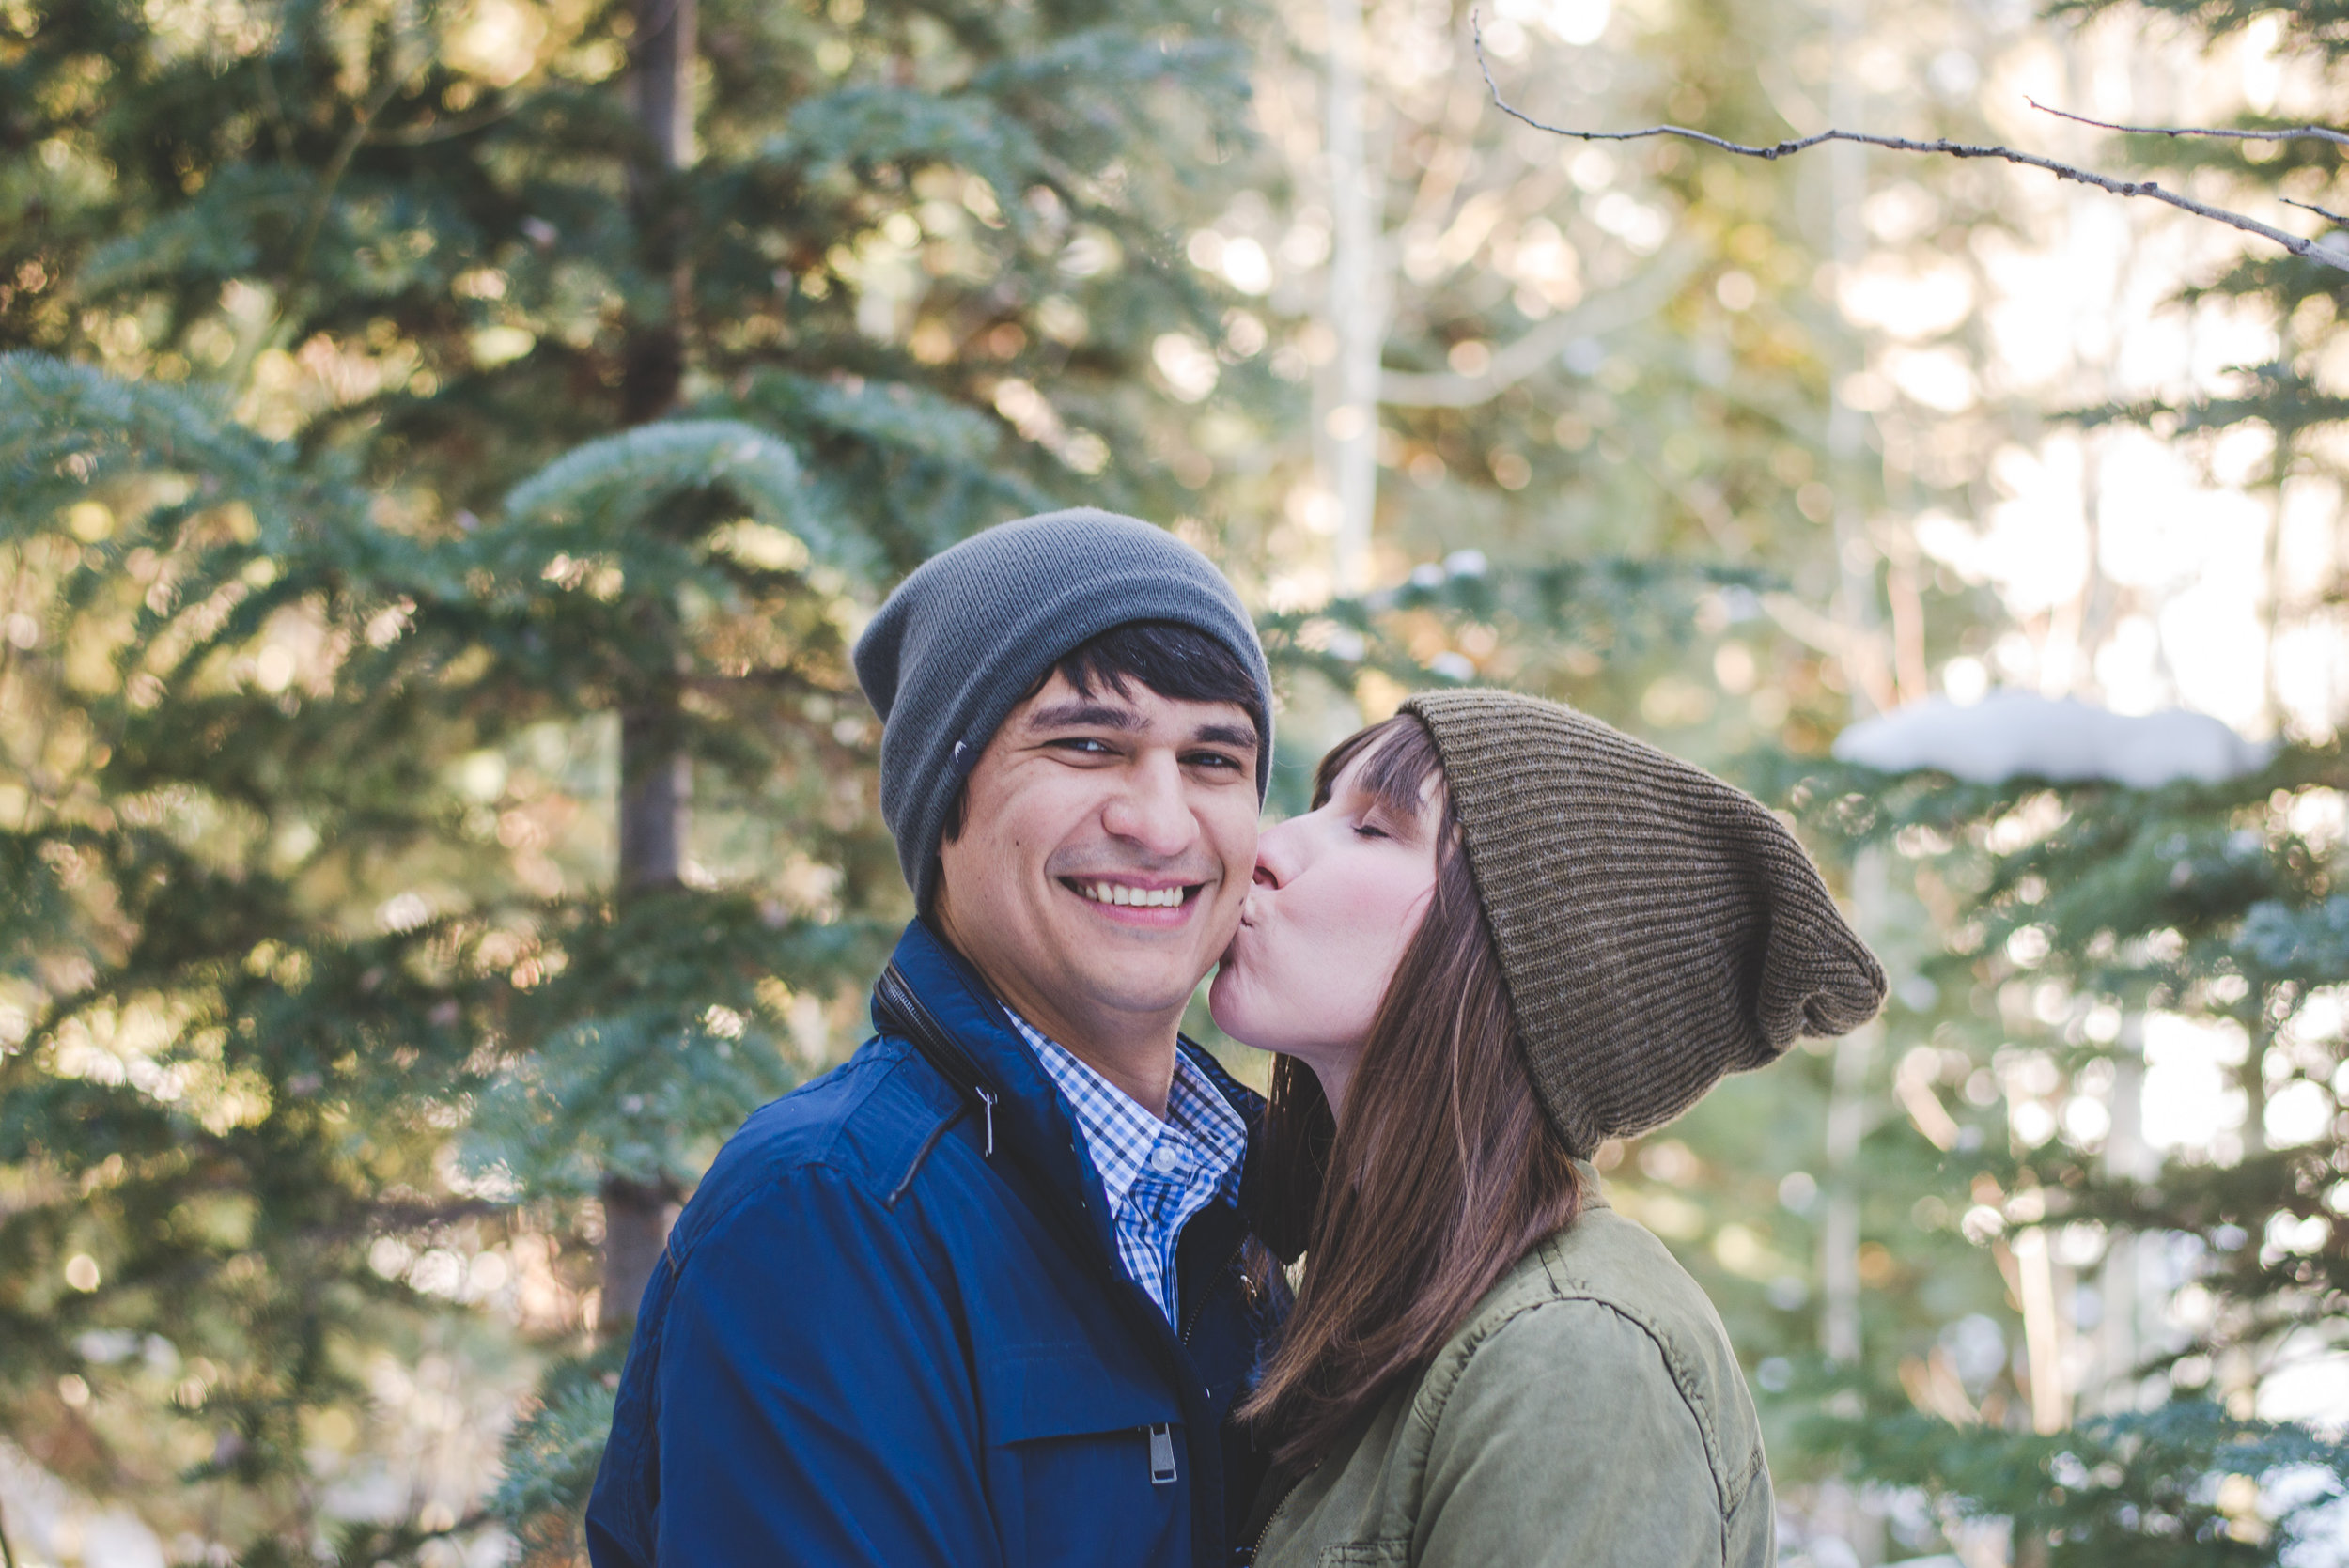 beautiful couple sharing some love among the winter pine trees during their family photo shoot in the Colorado mountains!